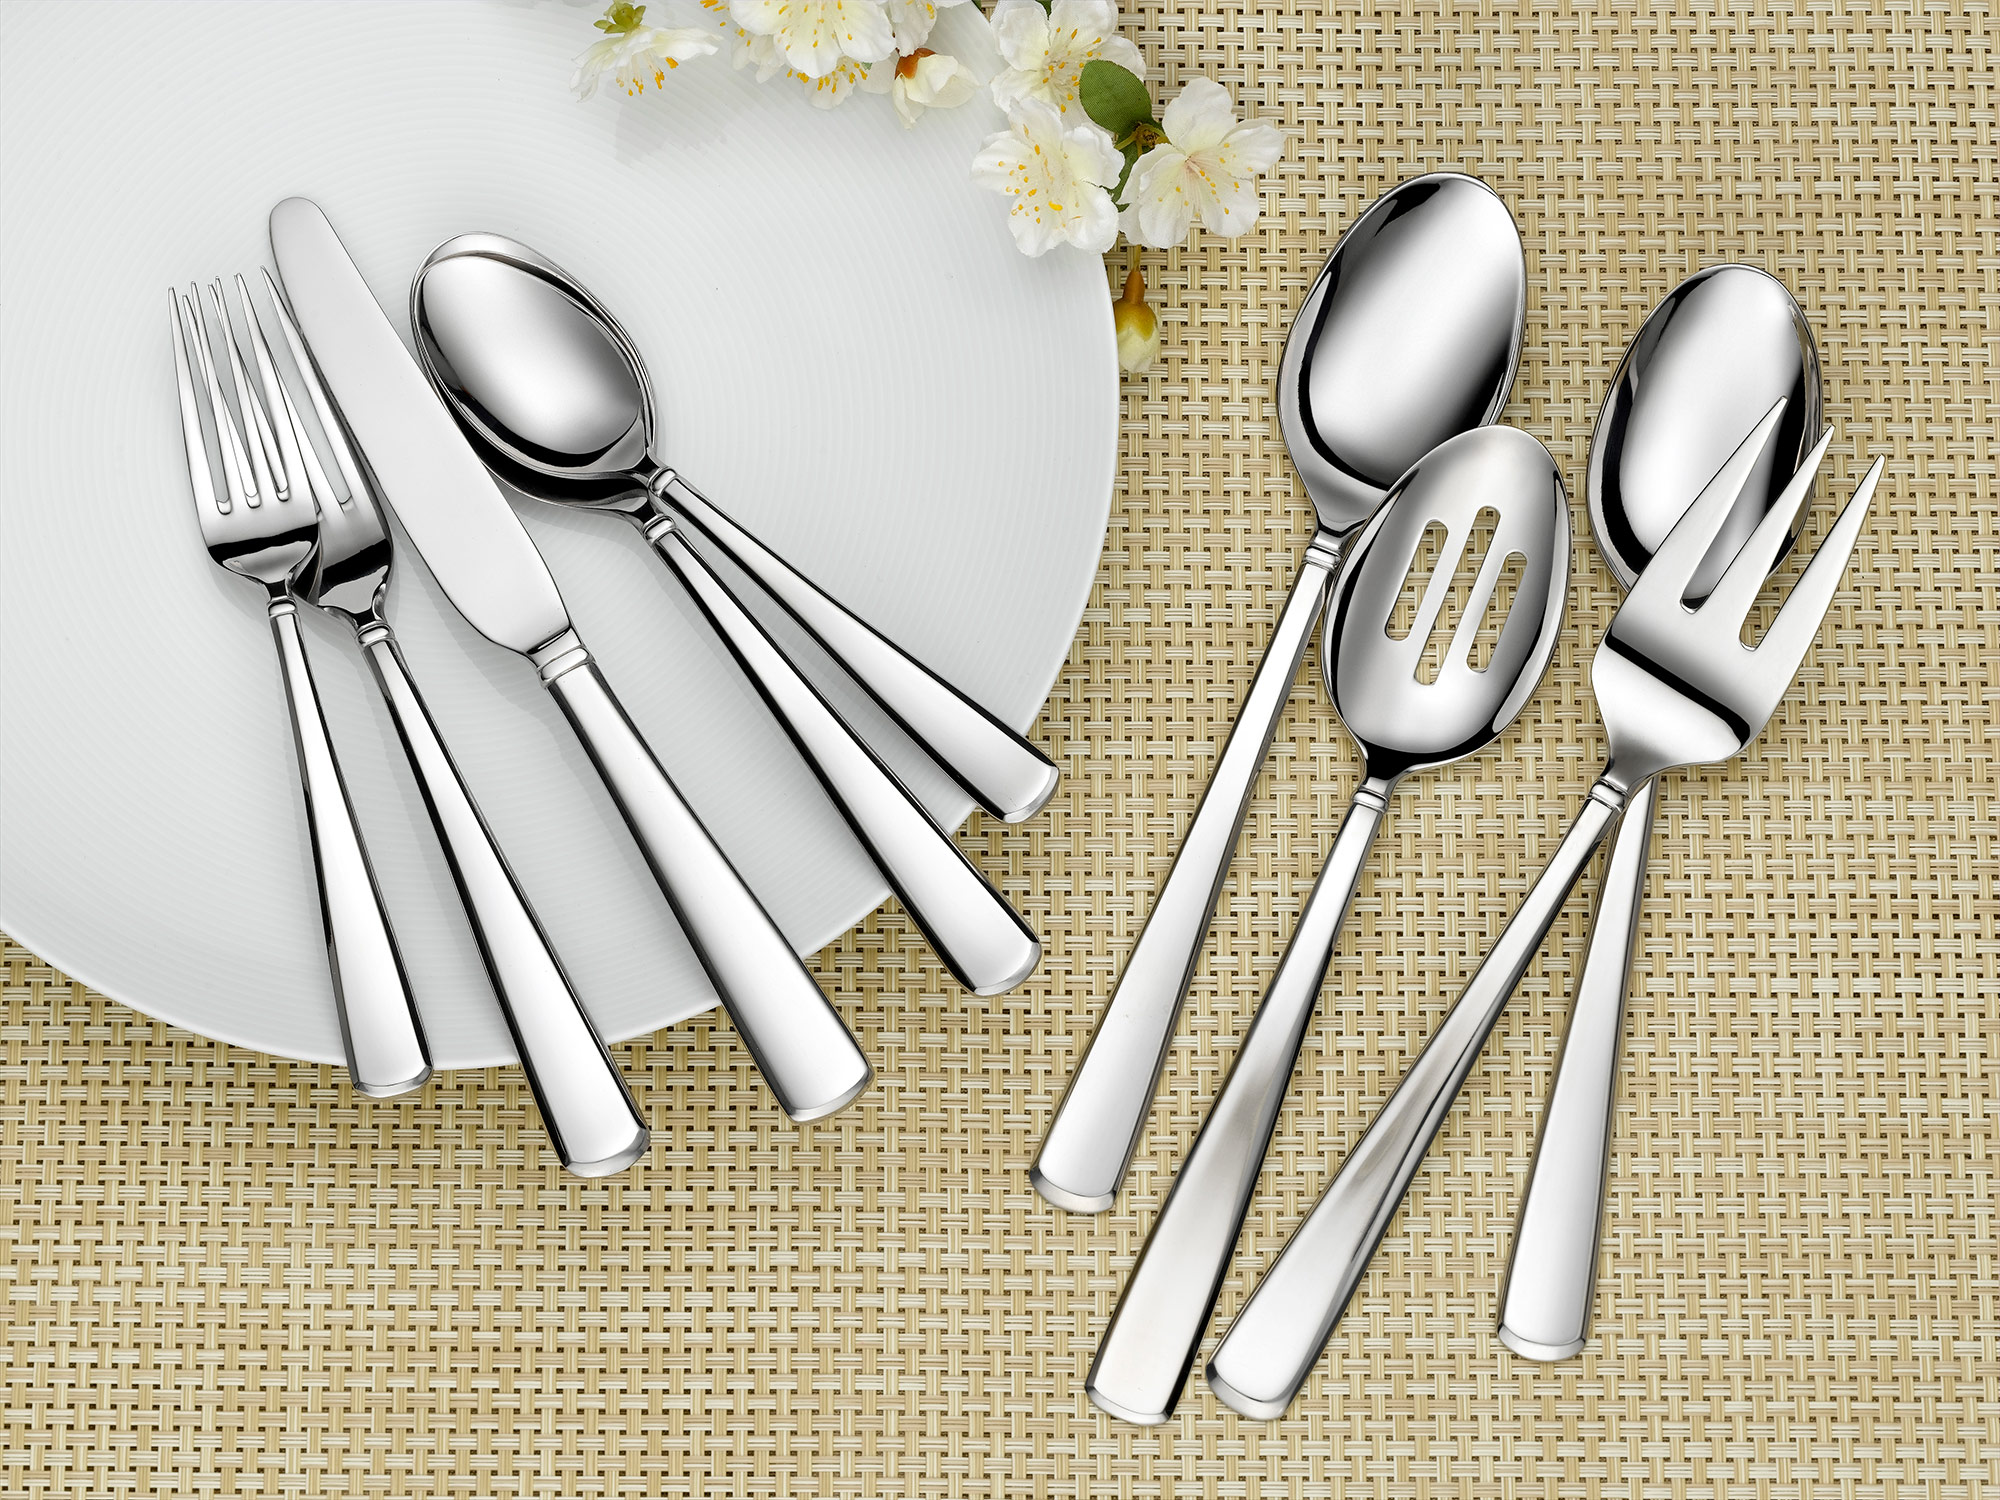 Cambridge Flatware lifestyle product photography